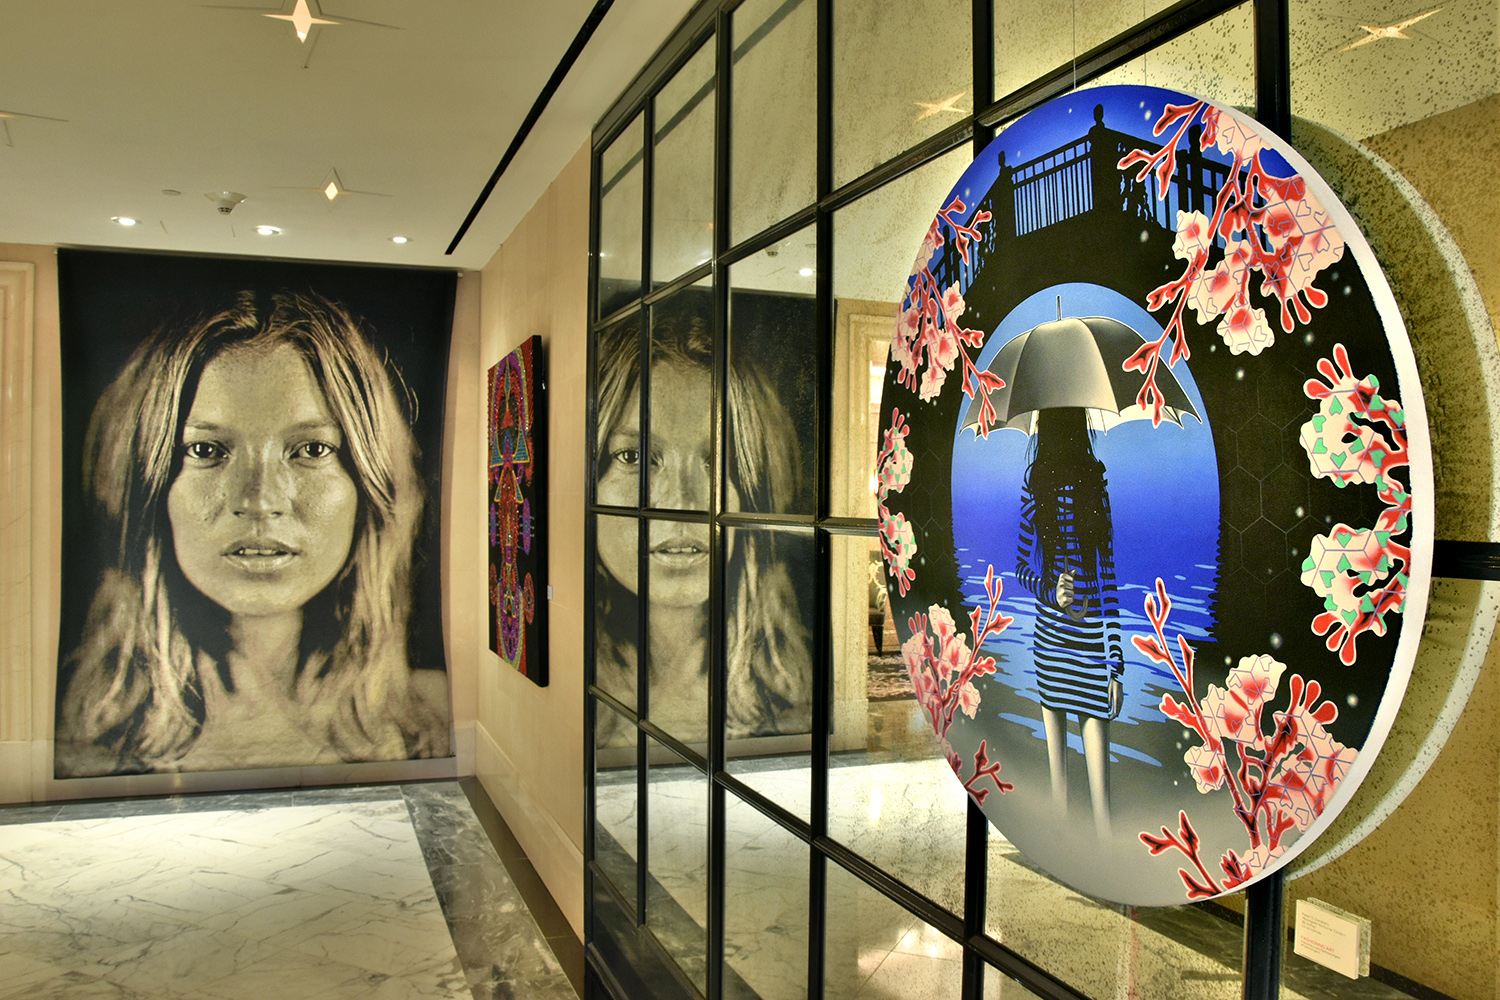 Peter D. Gerakaris' MoonGate Nocturne Tondo I (right) from  Umbrella Girl Series , Installation view from Fashioning Art Group Exhibition at The Surrey Hotel in NYC. Also pictured: Chuck Close's Kate Moss tapestry from permanent collection (left) & Evie Falci's Kybele (center) in Fashioning Art.